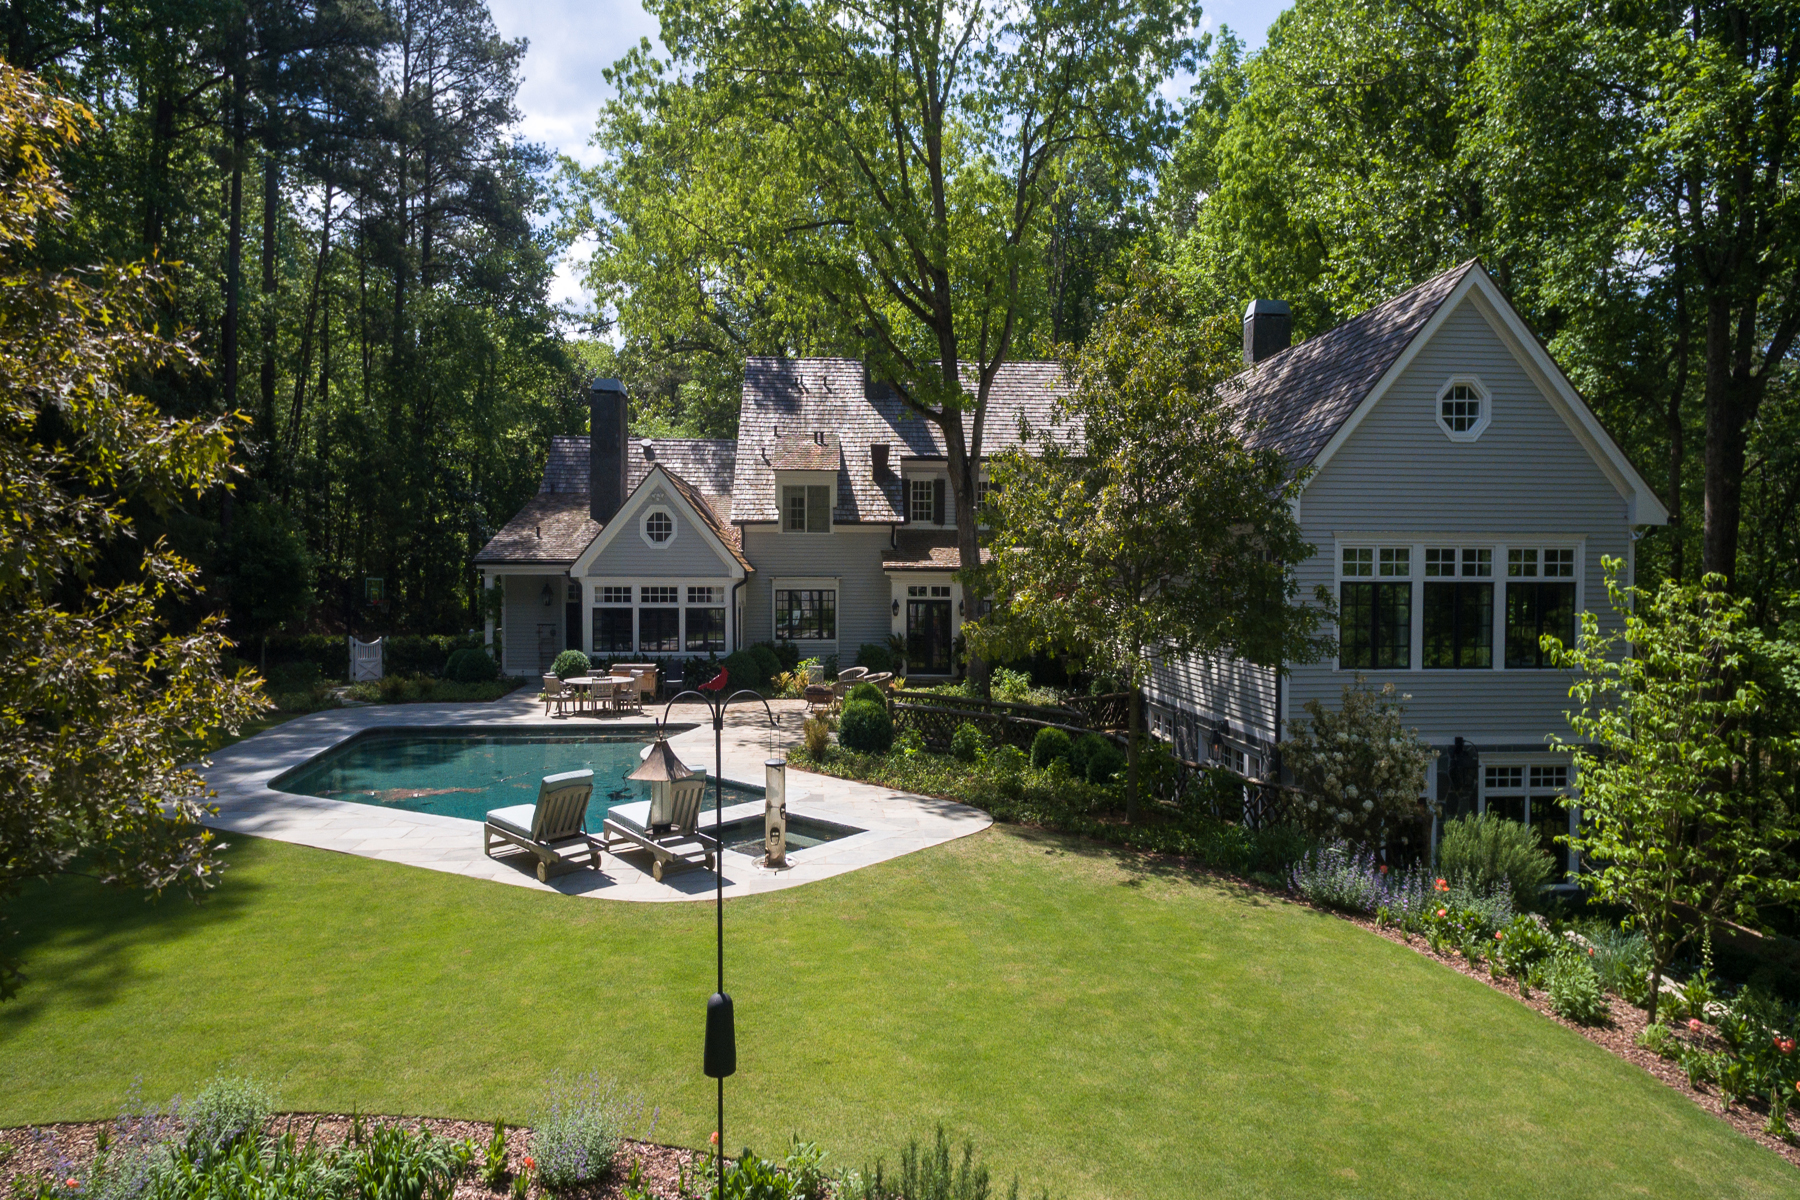 Additional photo for property listing at Amazing 4.86 Acre Estate Property With Lighted Tennis Court And Pool 4000 Conway Valley Road NW Atlanta, Georgia 30327 United States